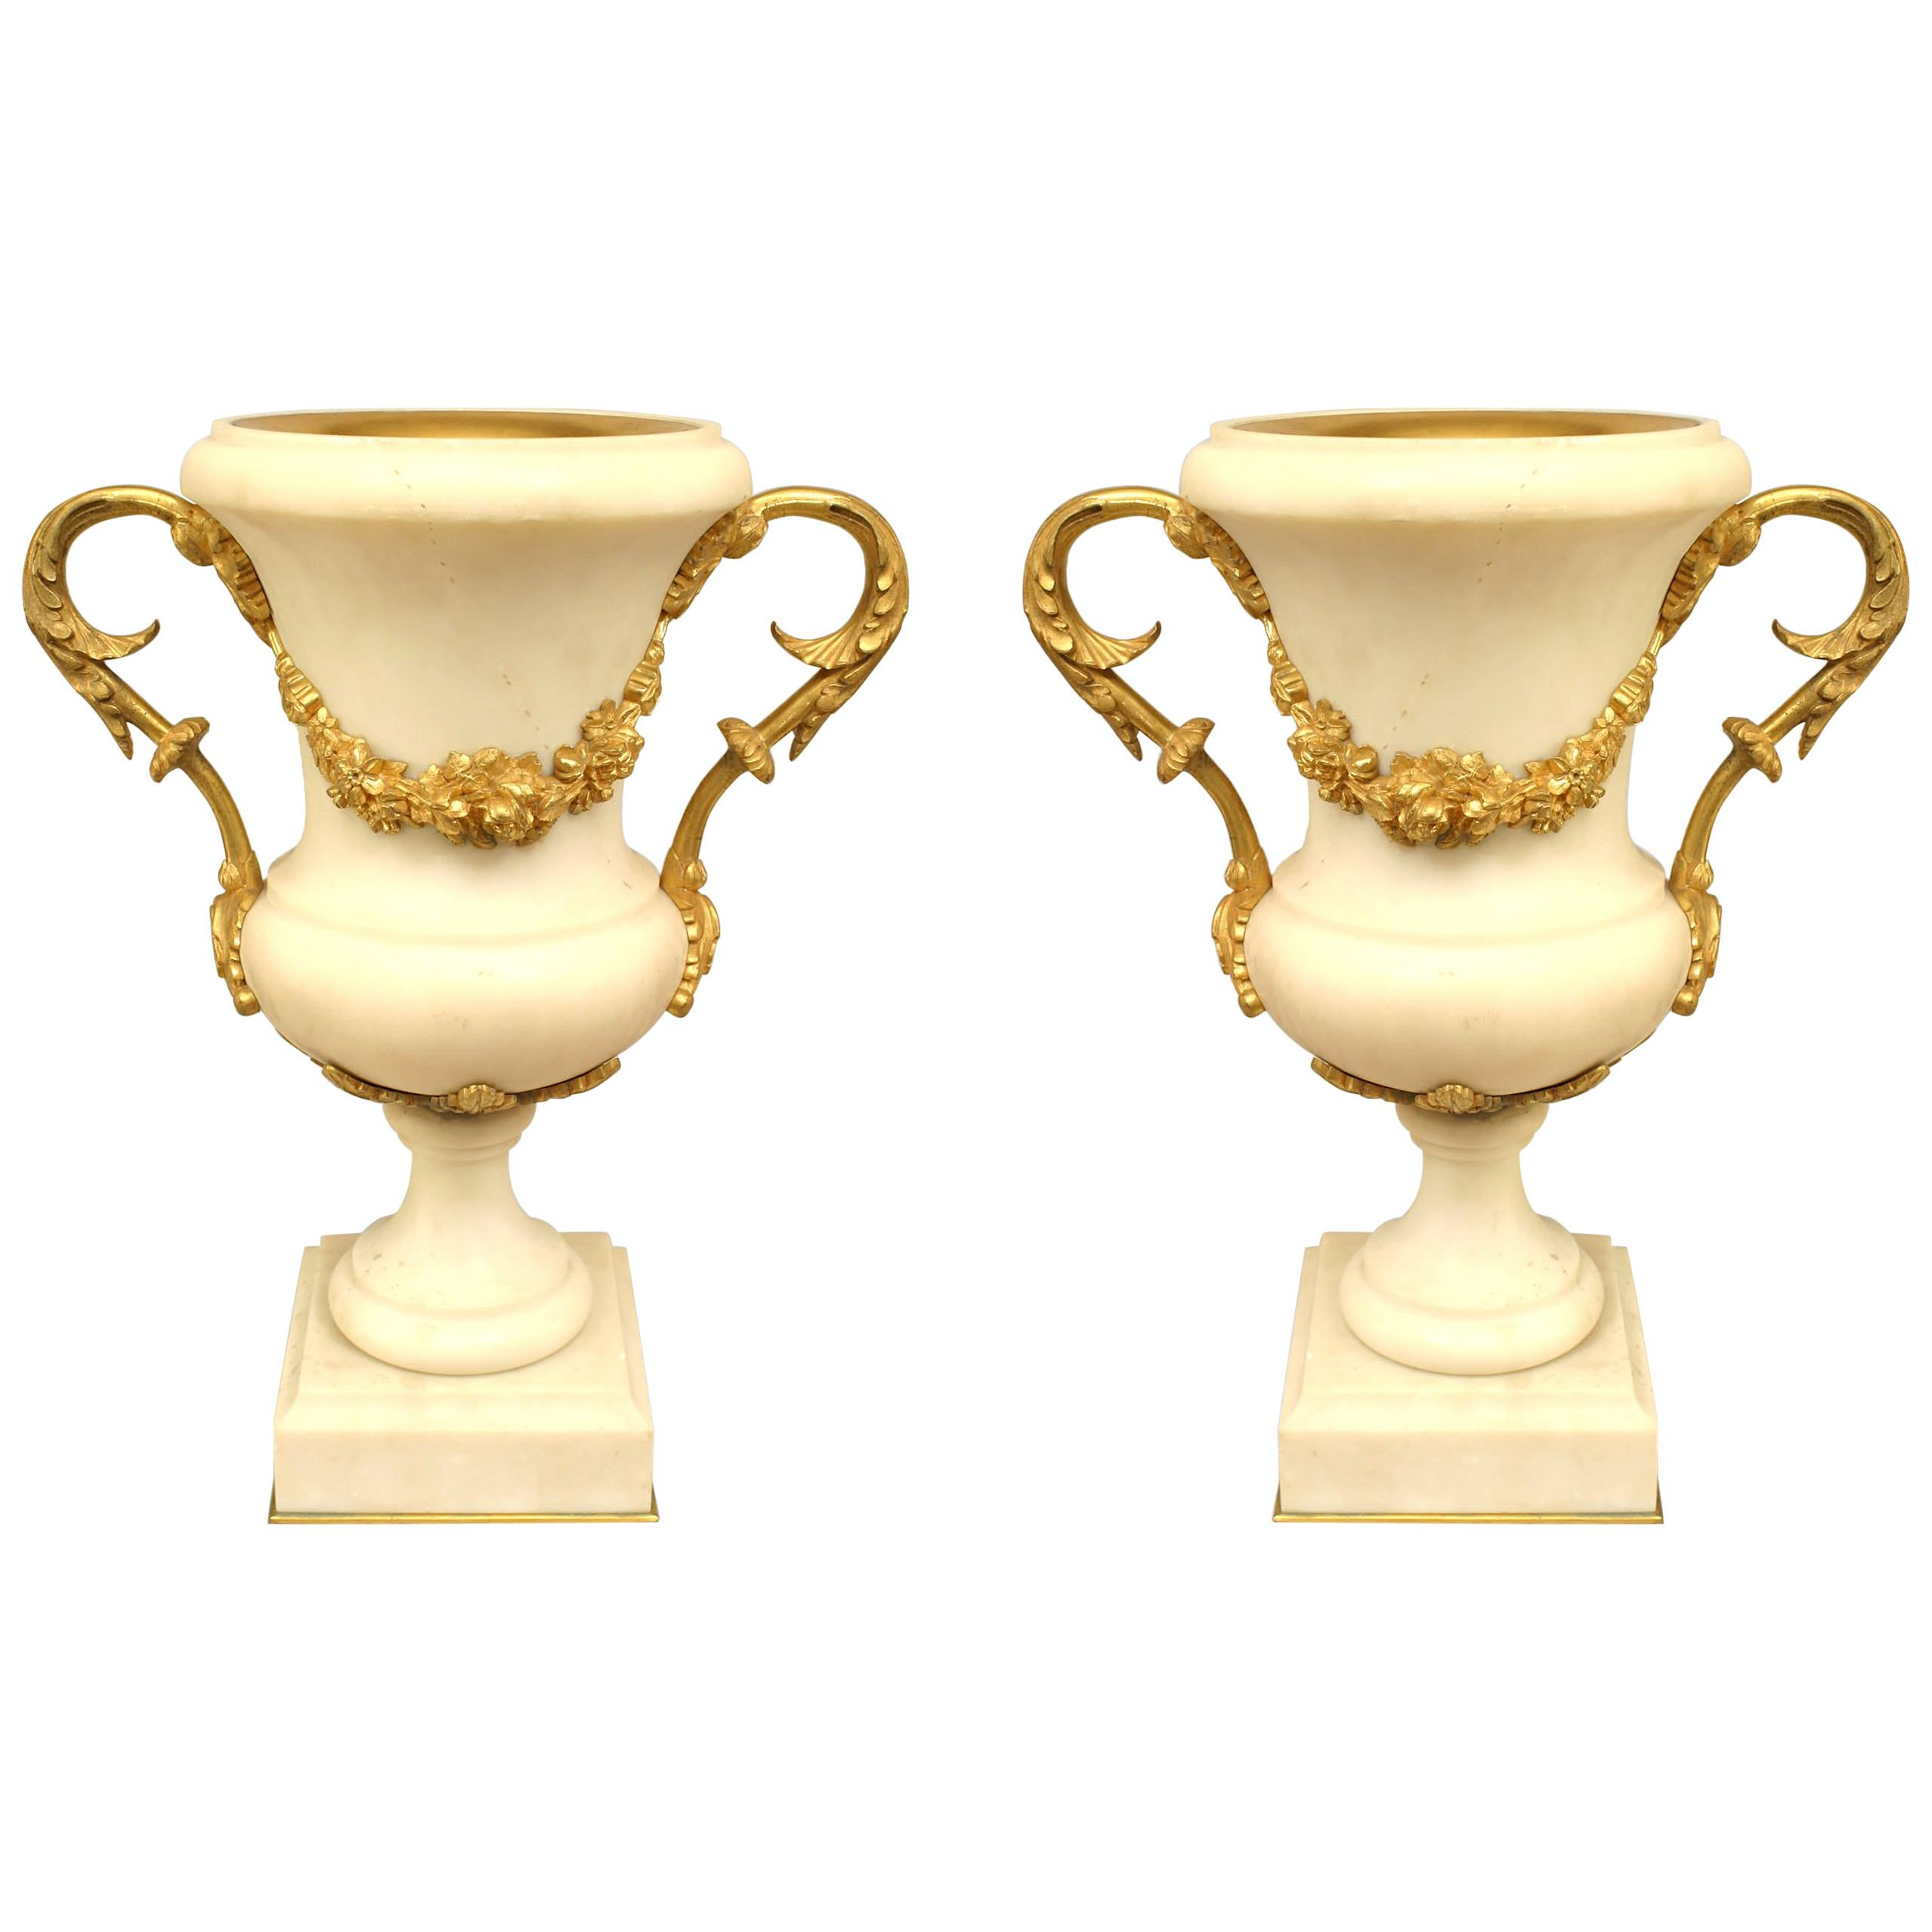 Pair of French Louis XVI Style Ormolu and White Marble Urns